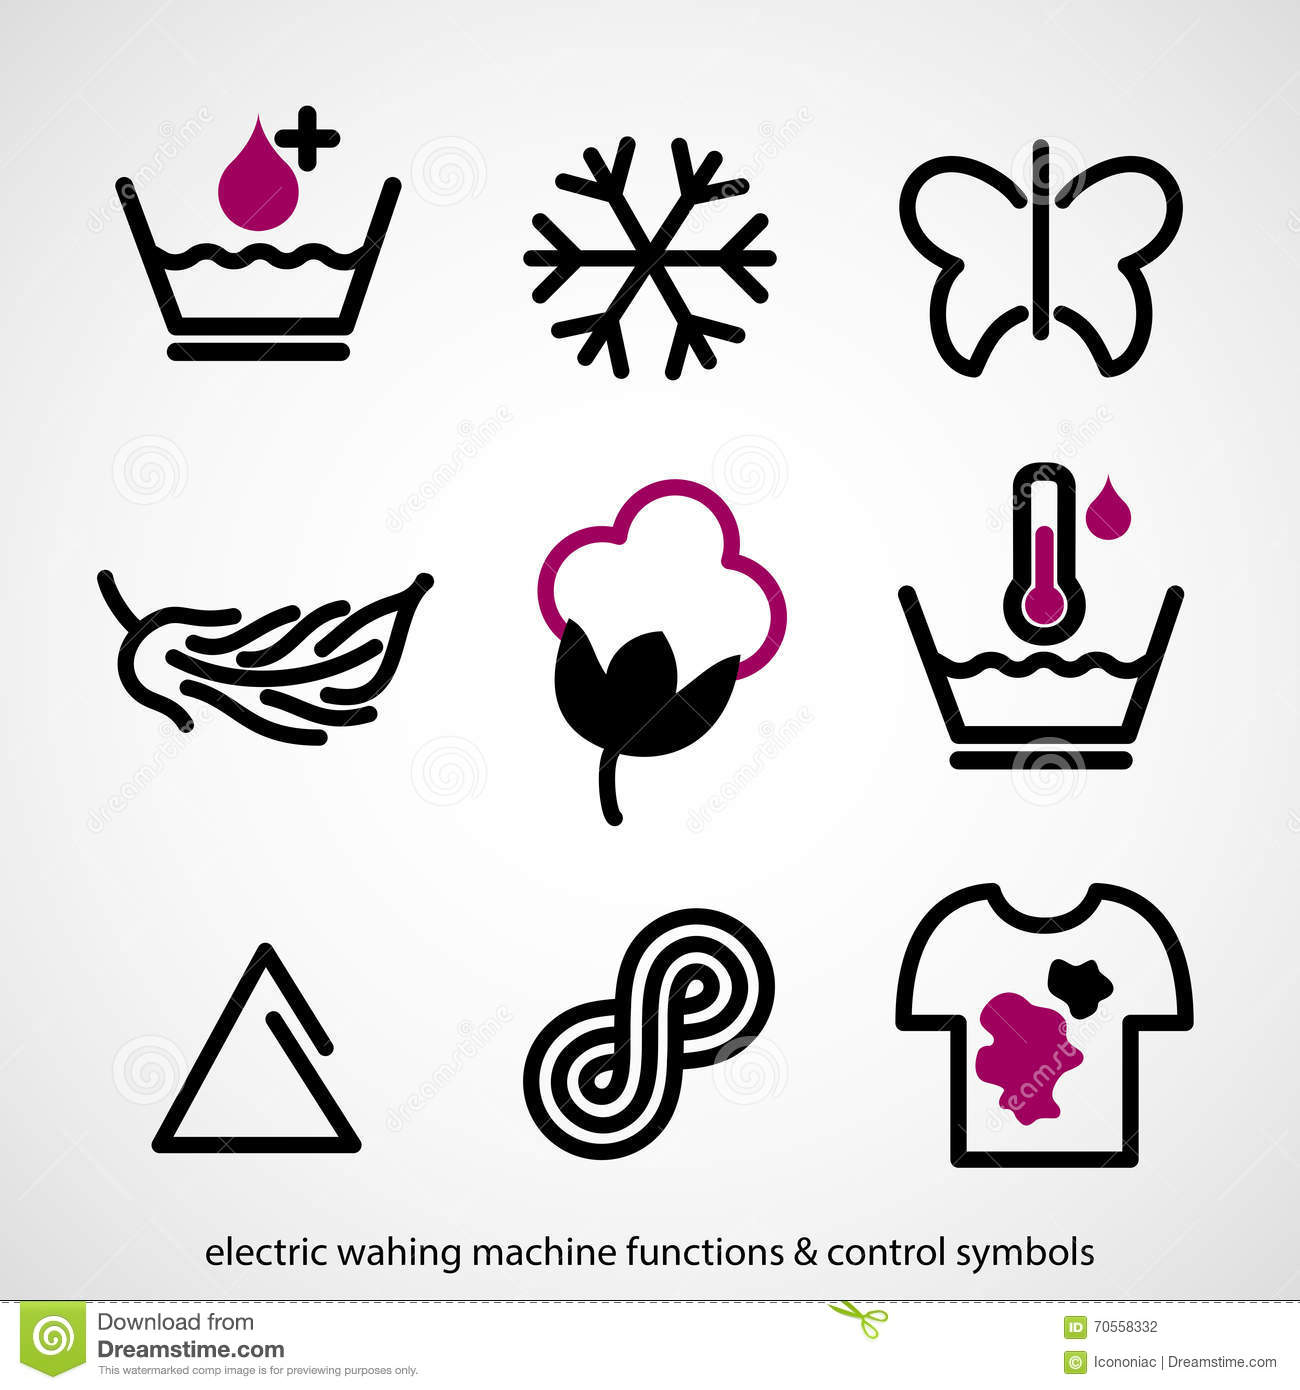 Electric Washing Machine Functions Amp Control Symbols Stock